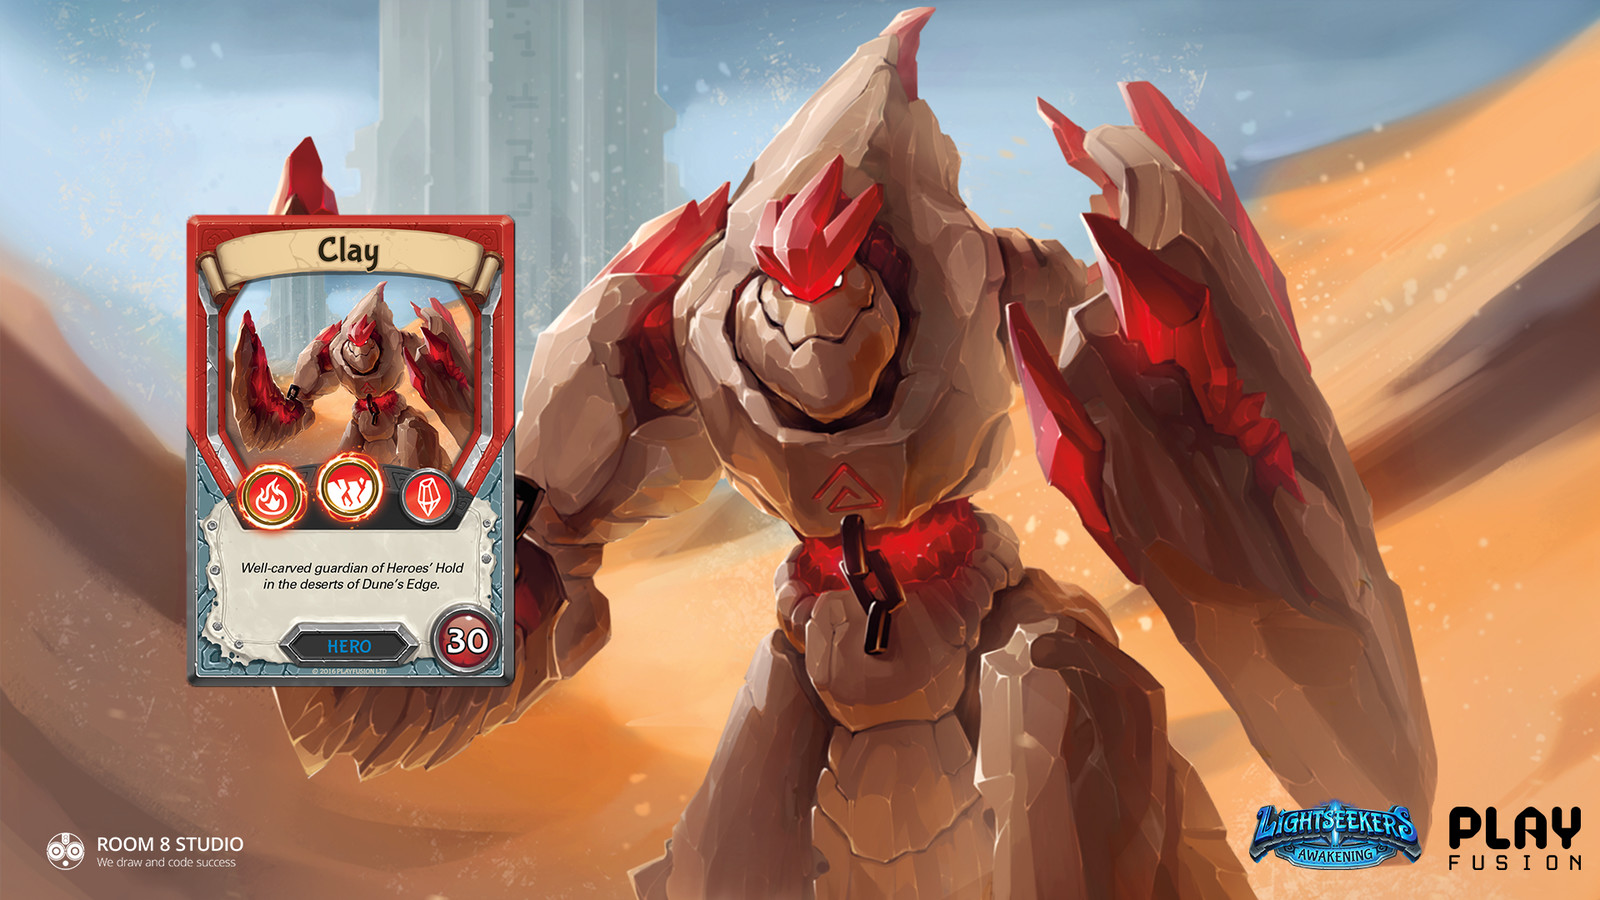 Lightseekers: Clay